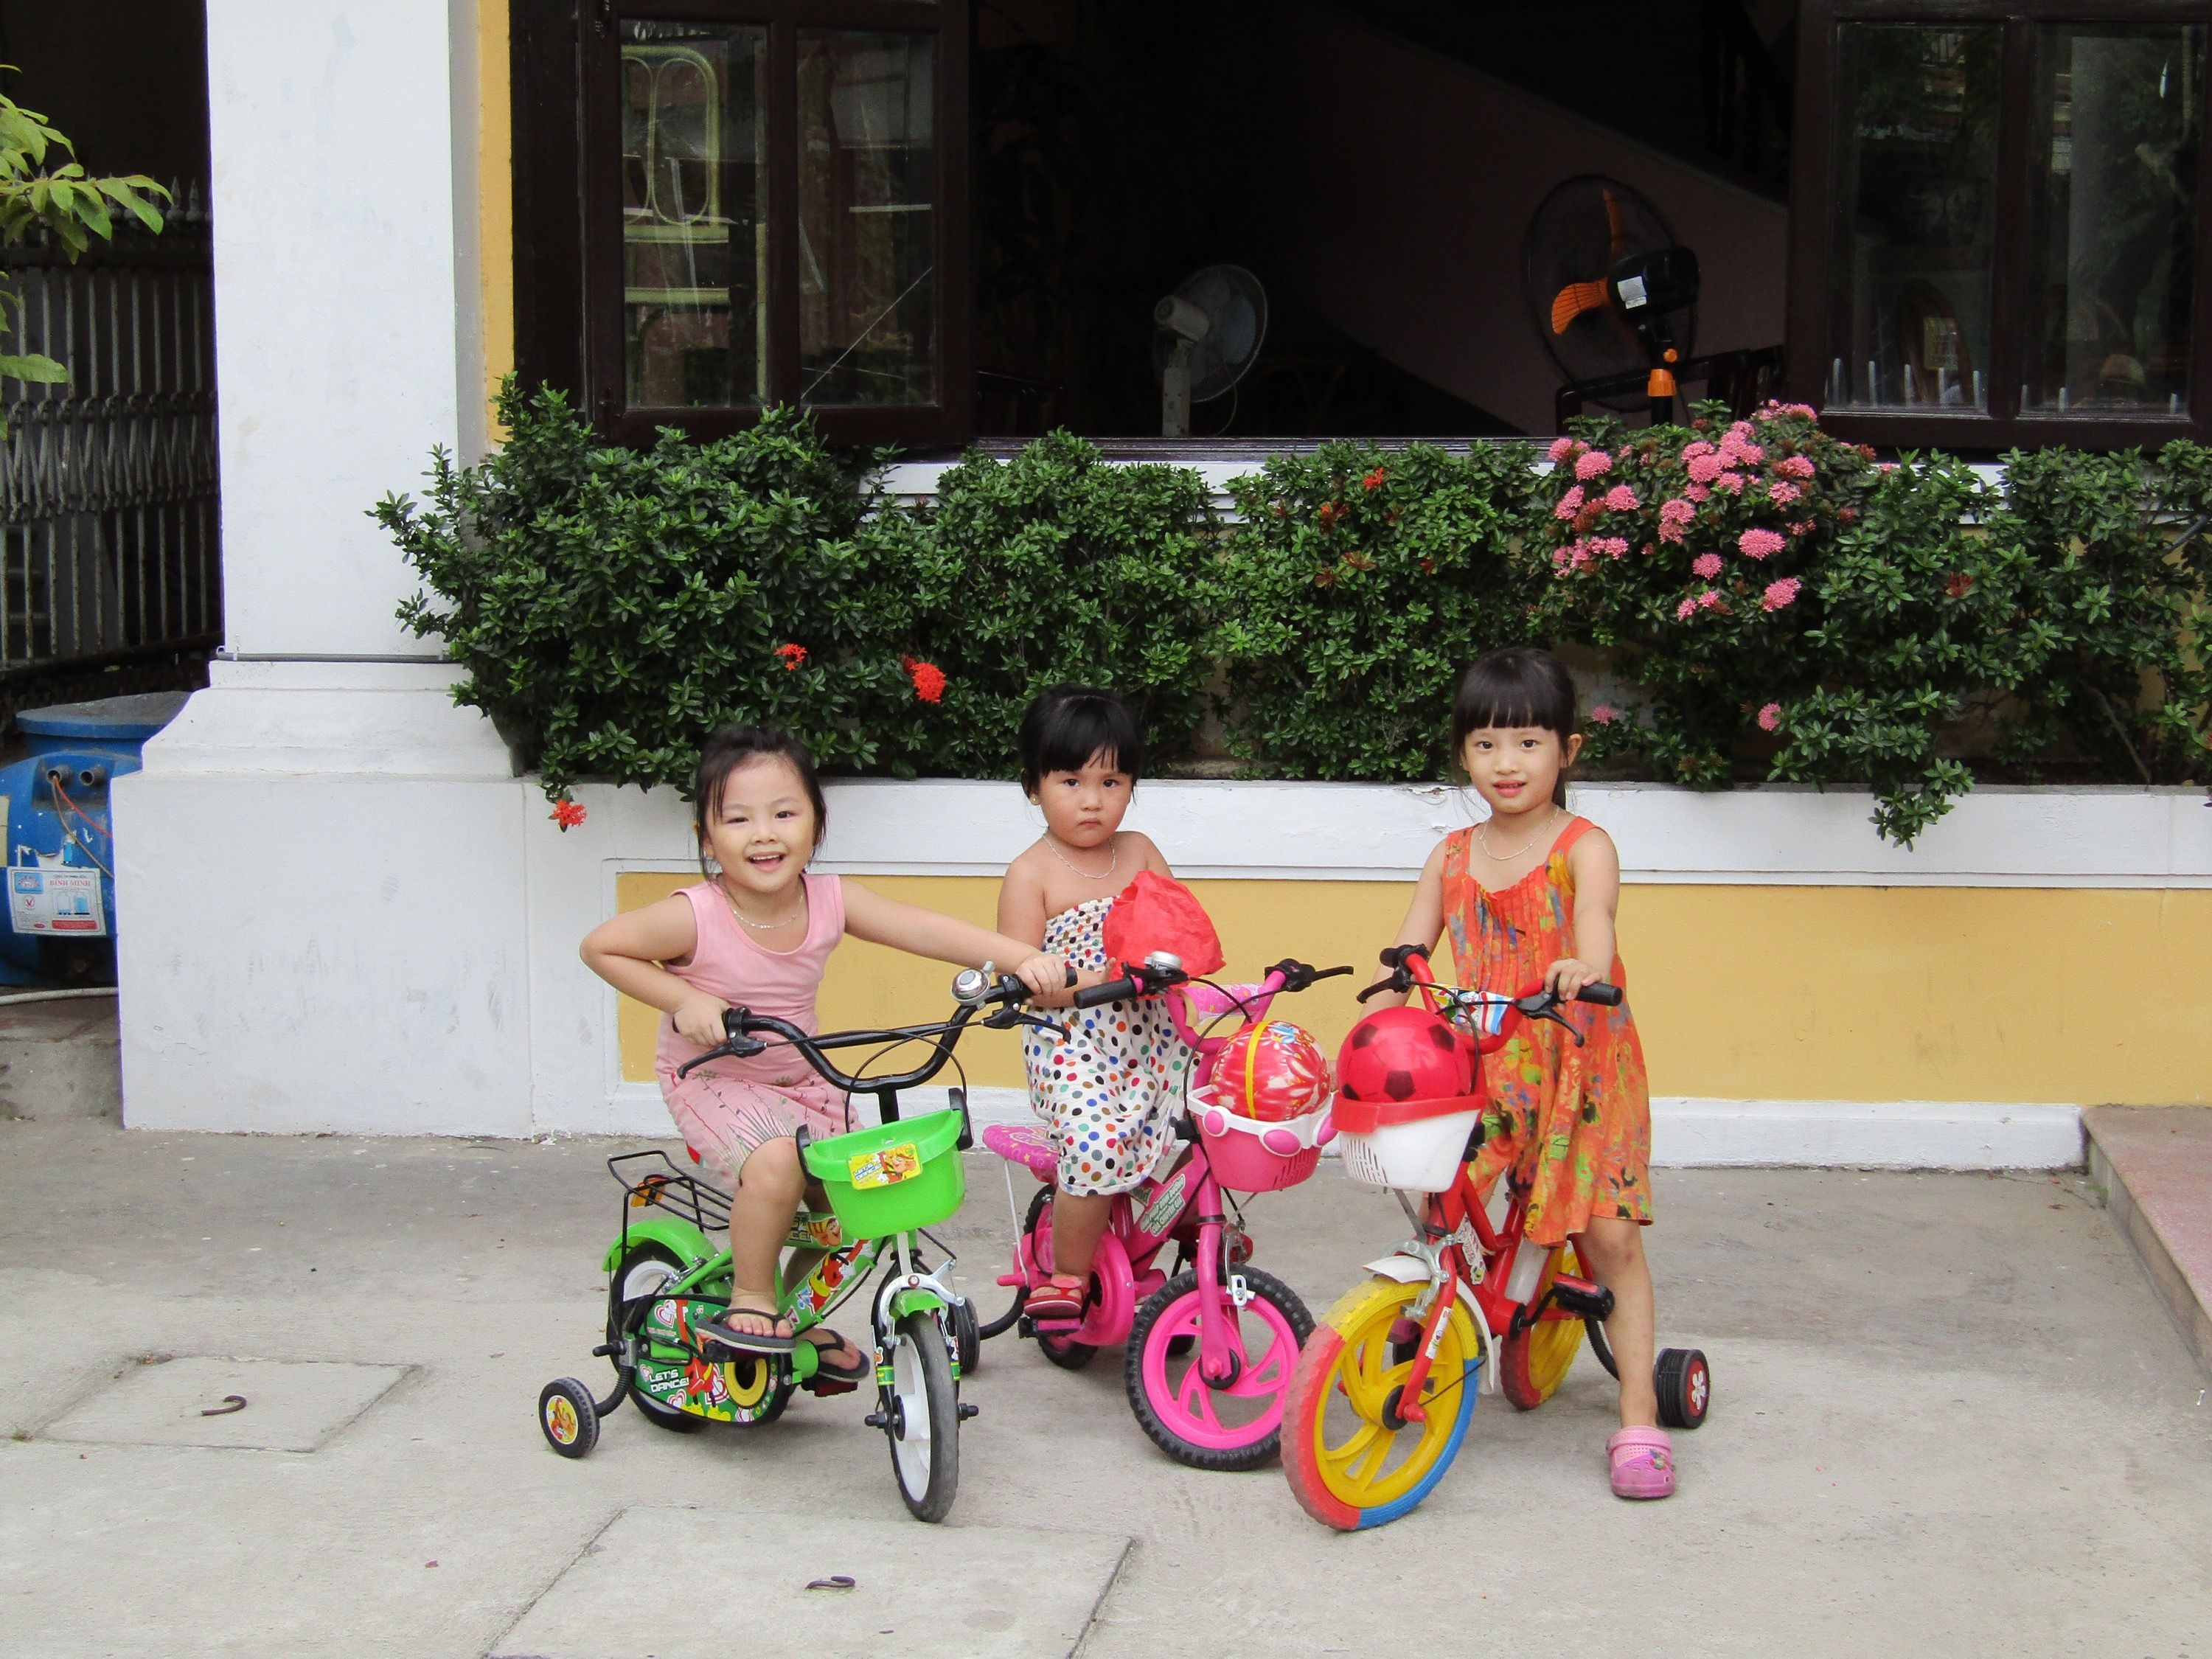 When we returned from exploring the old town area, these three little girls were riding their bikes in the parking area of our hotel. When we asked to photograph them, the girl on the left jumped into action. Clearly the ringleader, she got them all into position for the photo. The girl on the right followed along, but the girl in the middle didn't quite trust us...